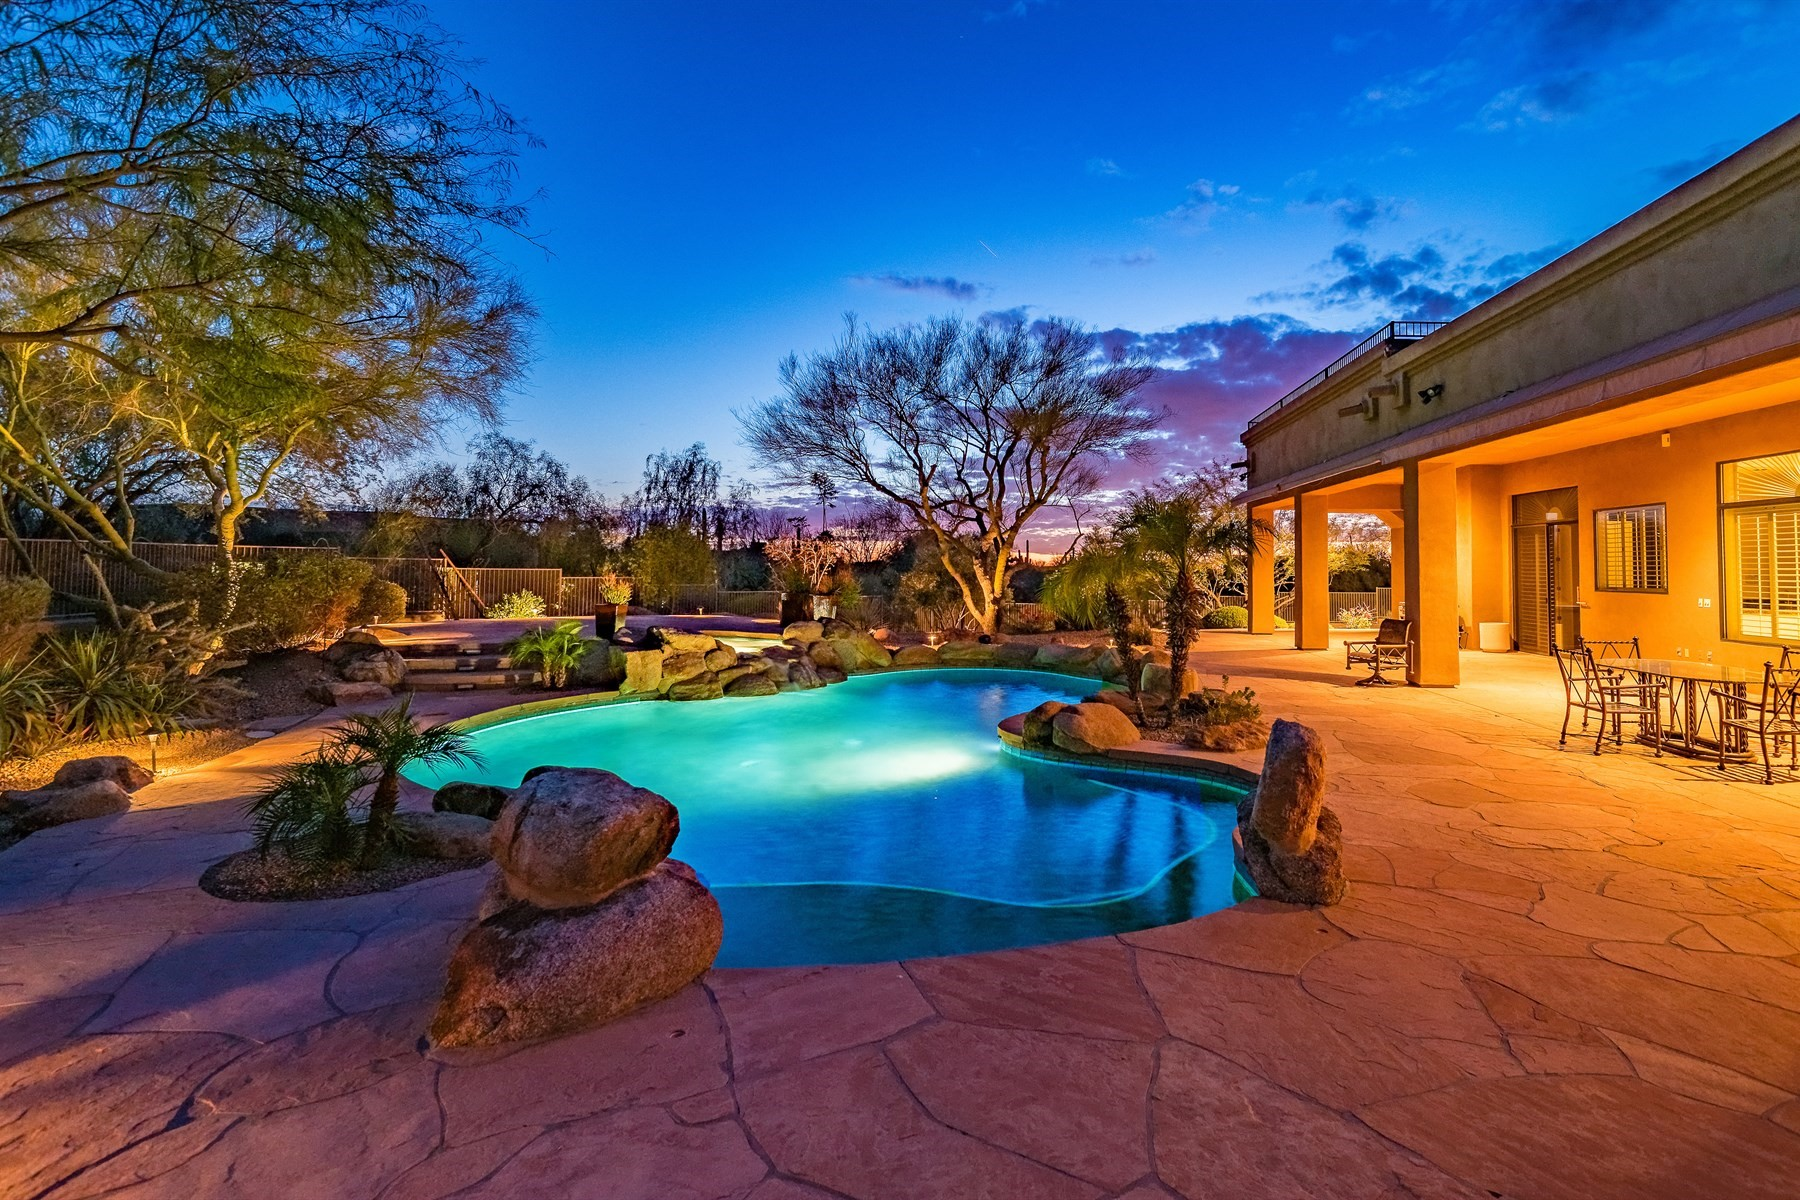 Single Family Home for Sale at Tranquil Oasis With Pinnacle Peak Views in Happy Valley Ranch 8437 E Sulky Circle, Scottsdale, Arizona, 85255 United States